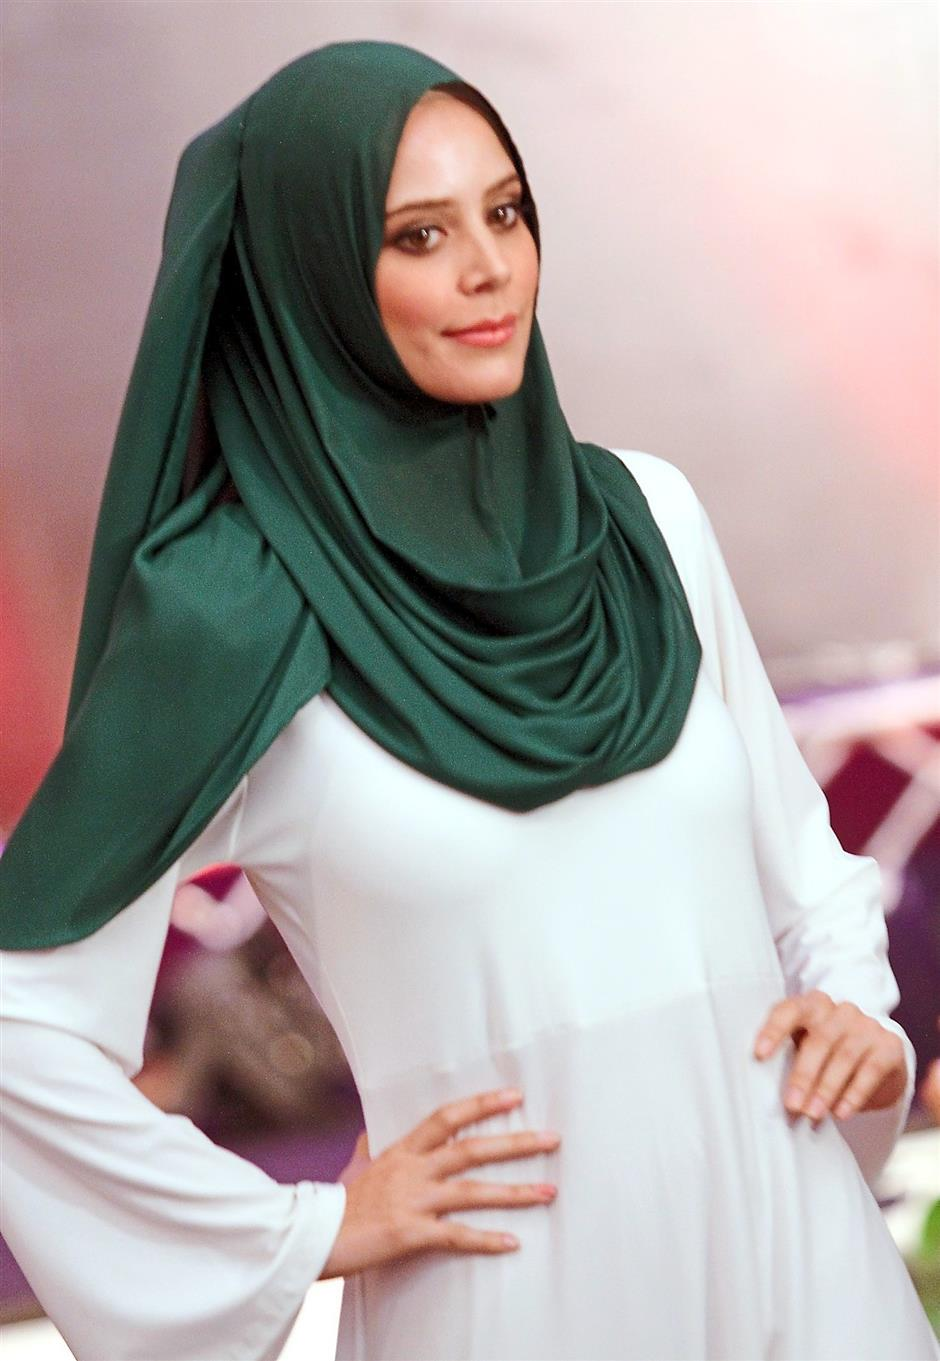 Modest yet stylish: Naelofar Hijab aims to make women look effortlessly chic with their easy to wear hijab.